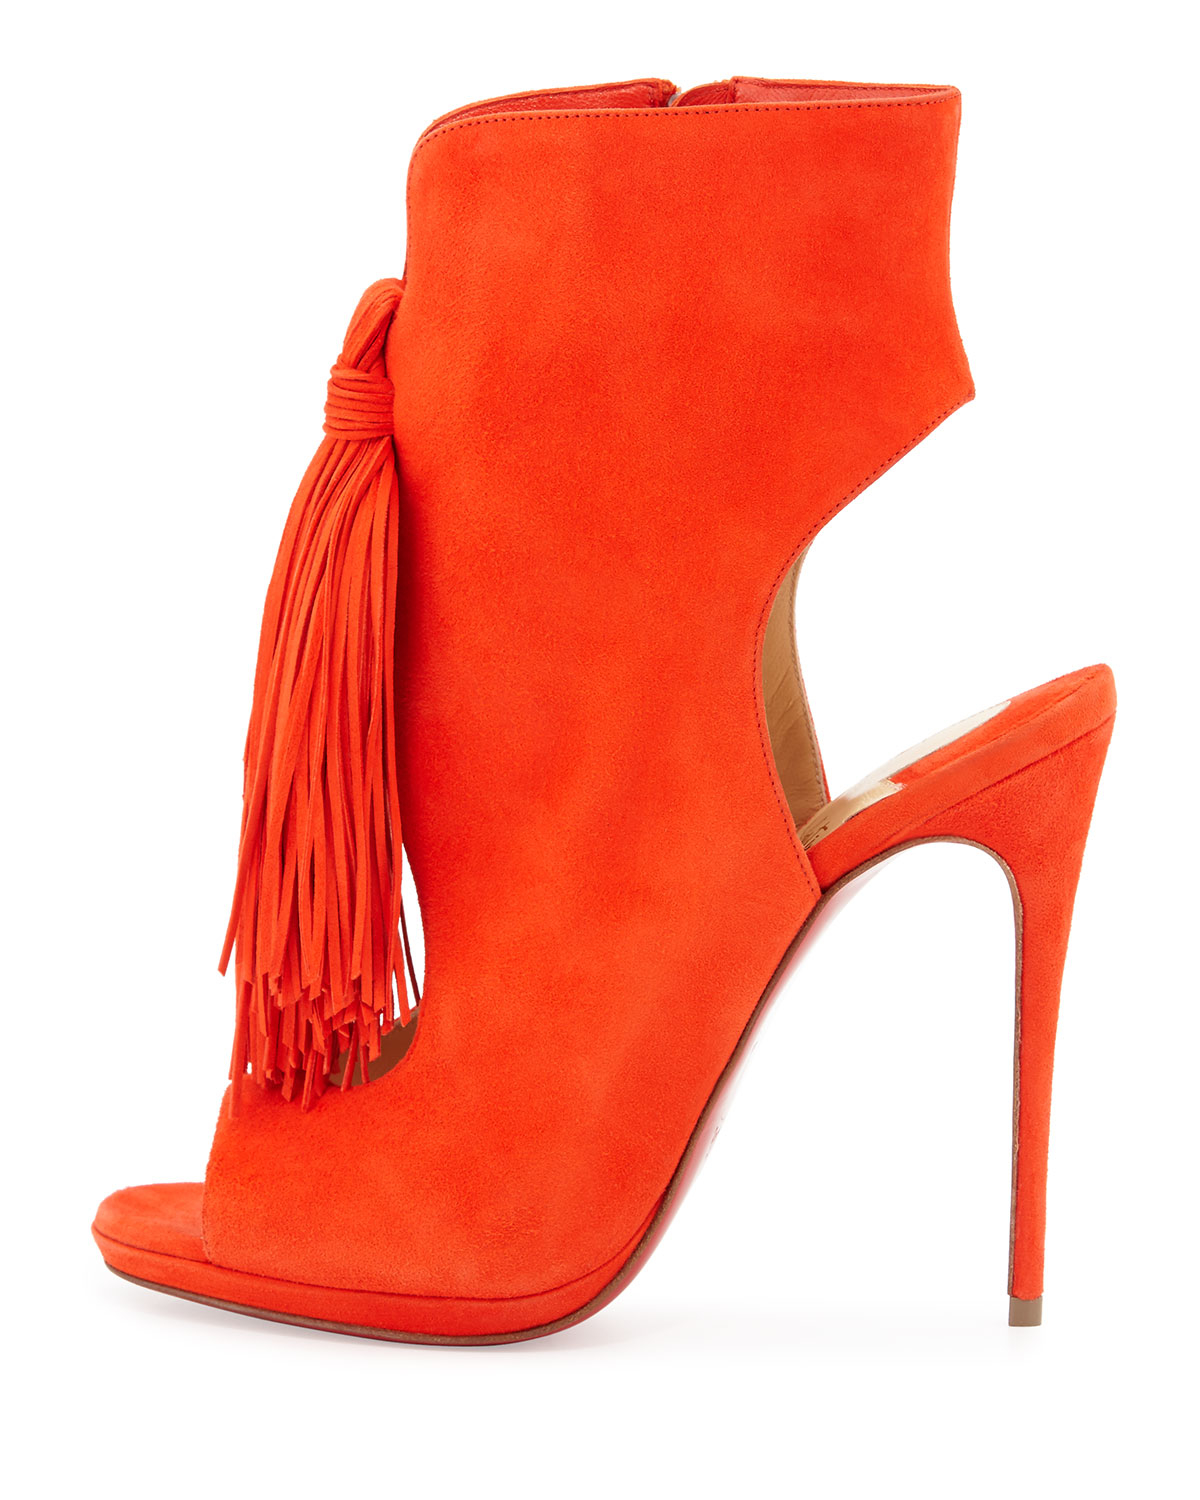 knock off christian louboutin - Christian louboutin Ottaka Suede Fringed Sandals in Orange ...